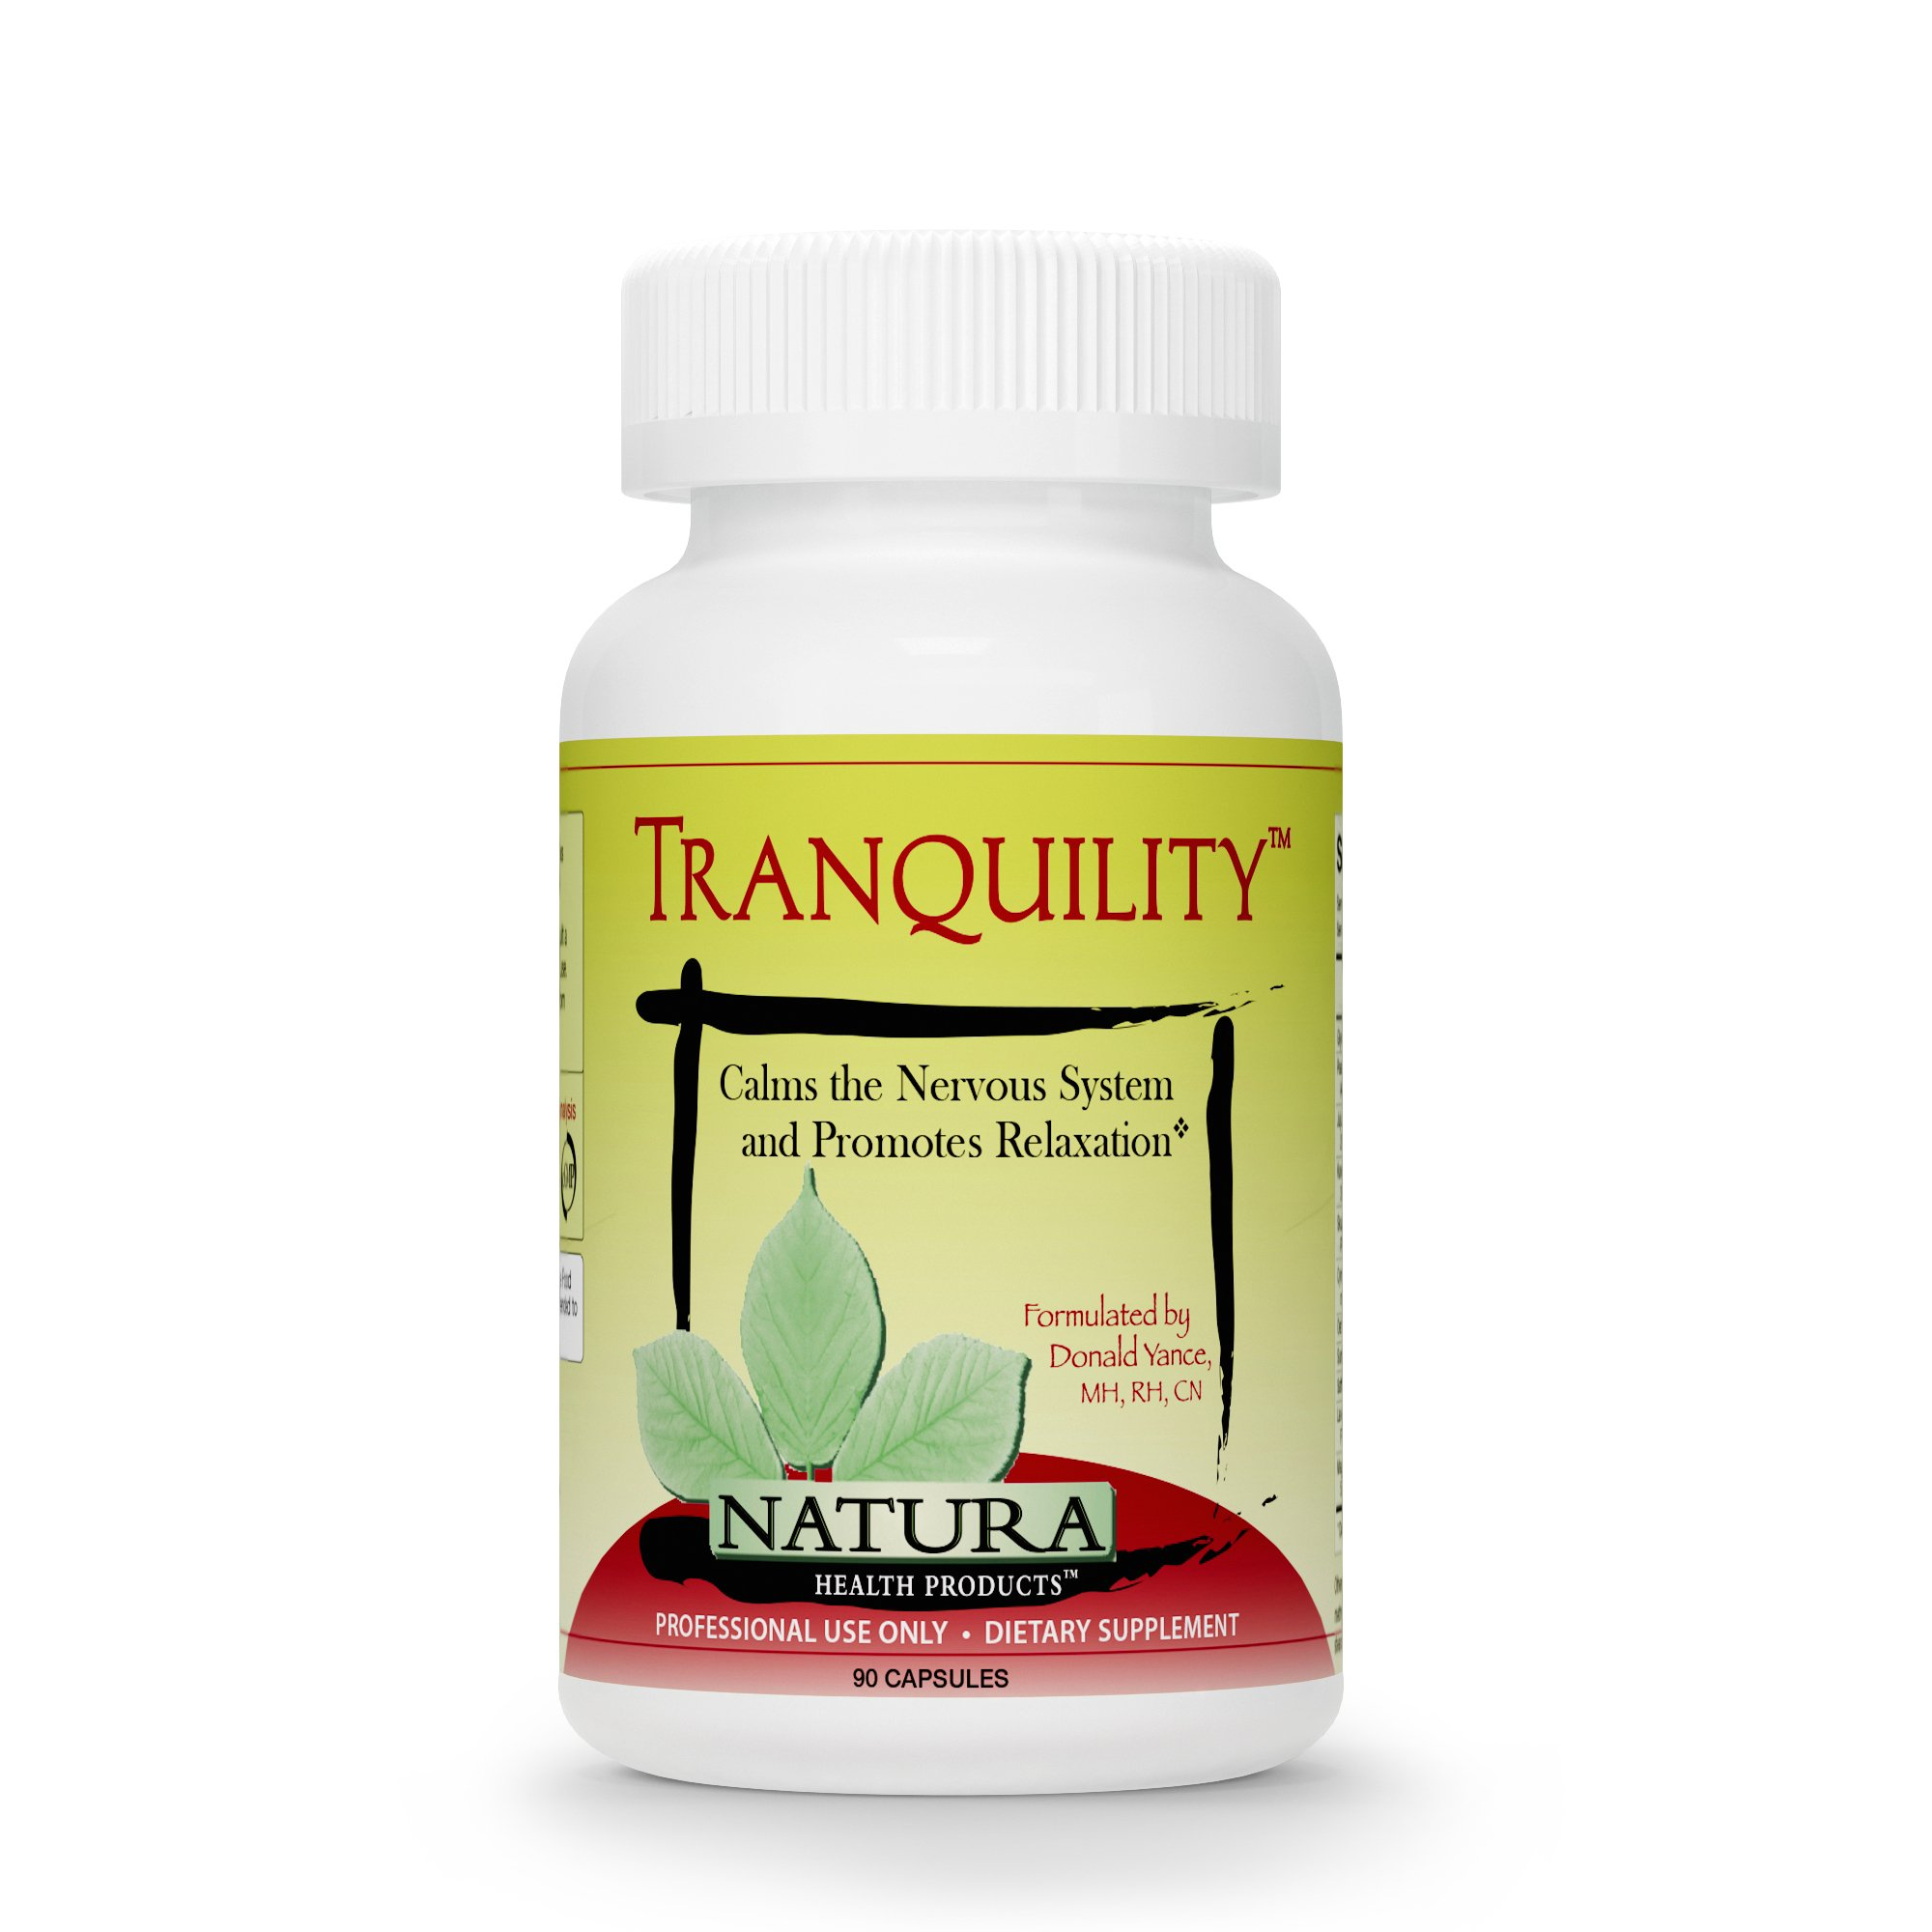 Natura Health Products - Tranquility GABA Calm Mind Nervous System and Relaxation Supplement - Science Formulated Classic Tonic and Relaxant Herbal Nervines - 90 Capsules